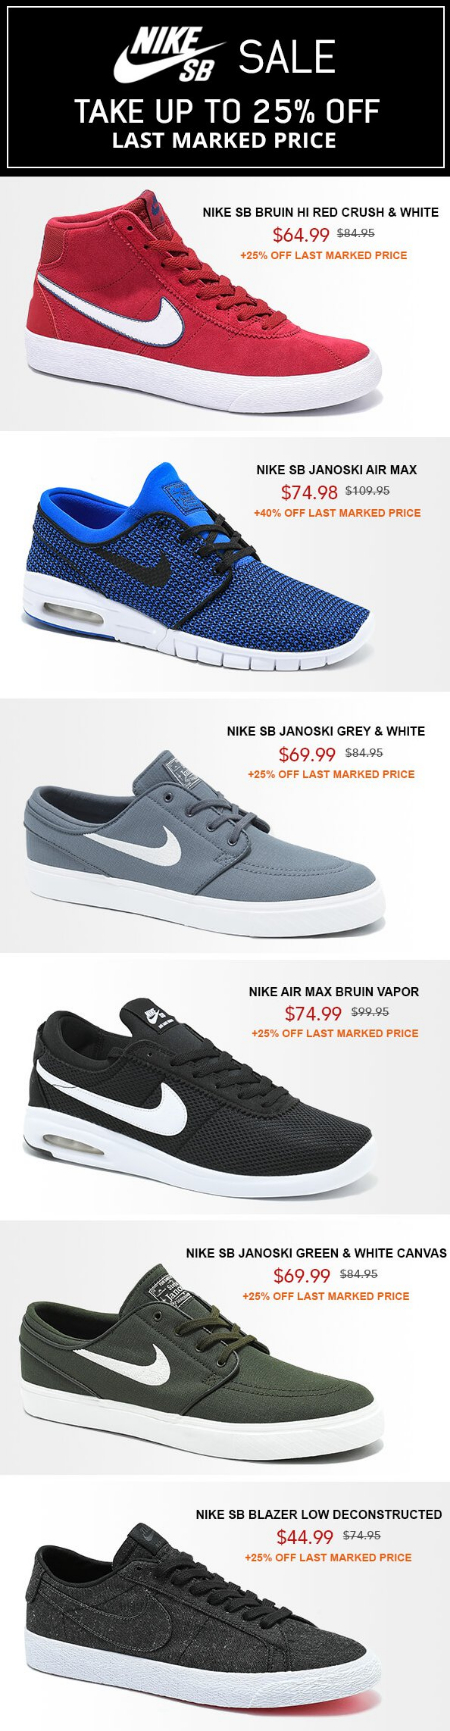 various colors b68e9 e44fa ... black white 7964c 7f676 closeout zumiez nike sb sale up to 25 off last  marked price 1b63f c6813